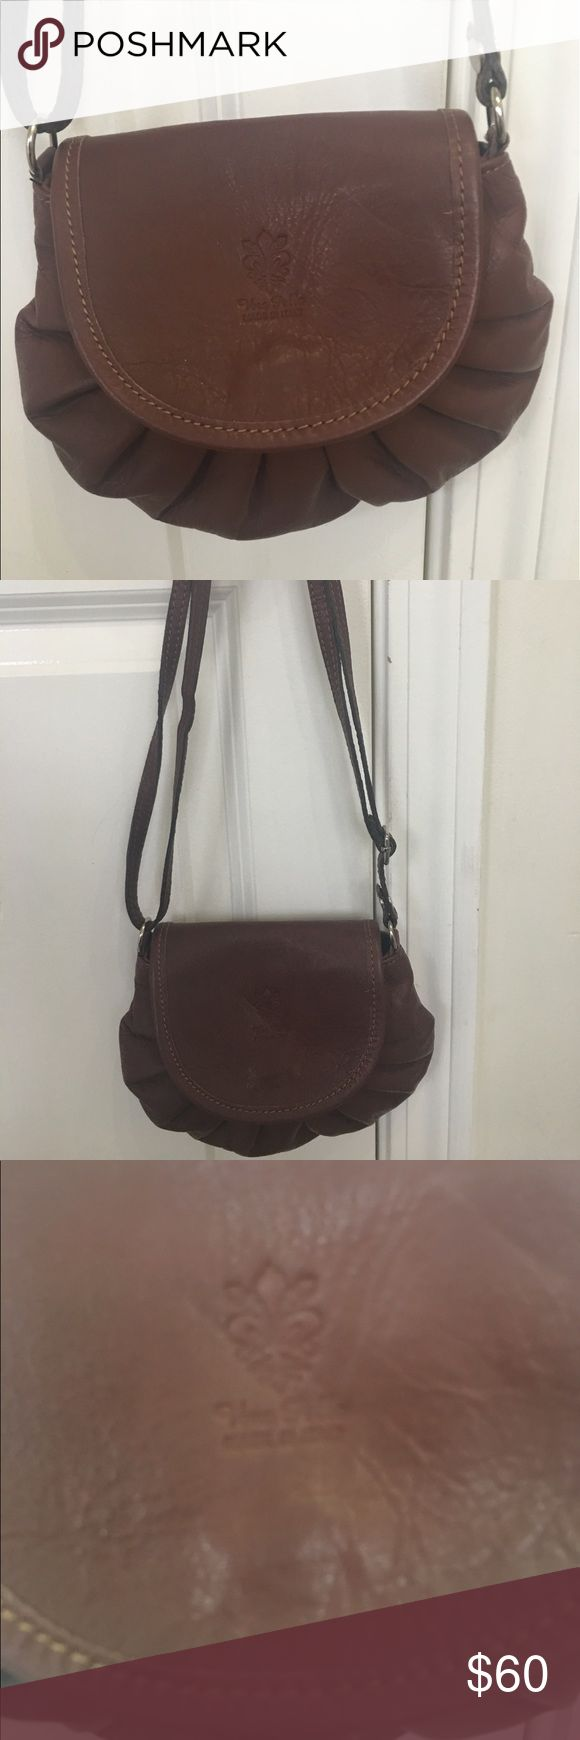 Vera Pelle Vintage Purse!! 👜 Vera Pelle Vintage Purse!! 👜 Great Condition! Great purse for date night or girls night out!! Vara Pelle Bags Shoulder Bags